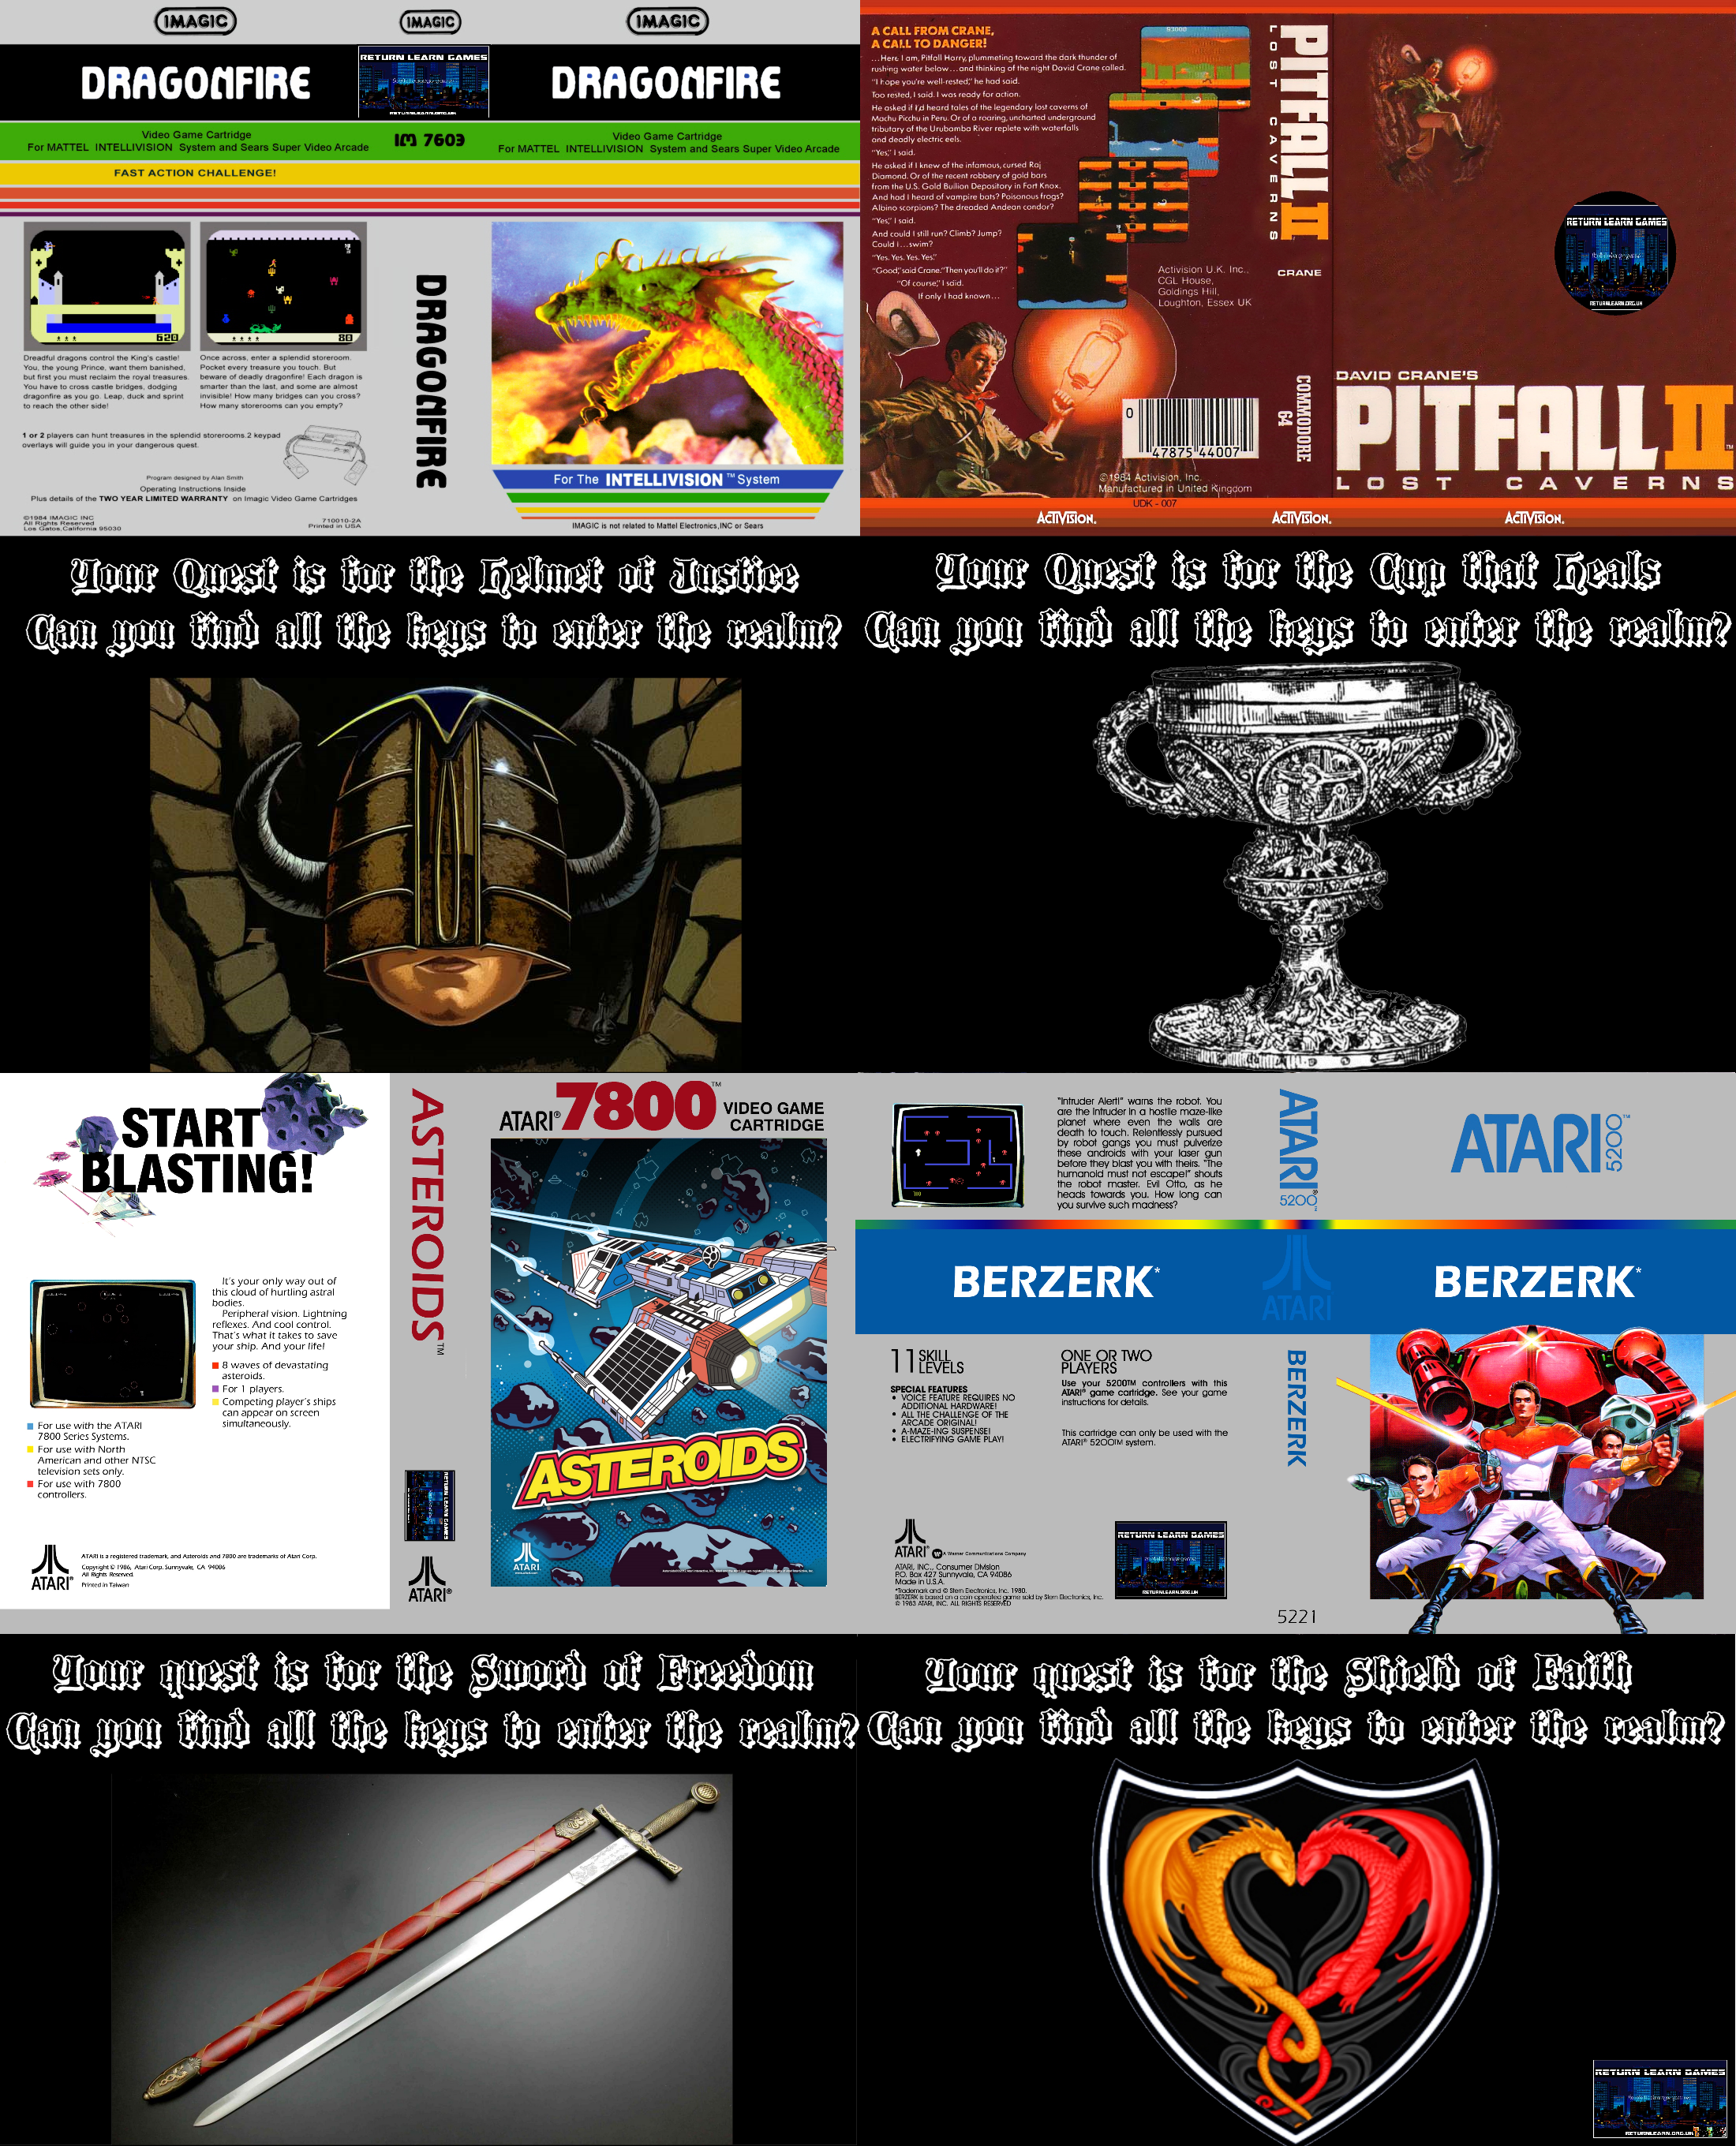 jh-atari40th-RP1-Competition-knightmare-true